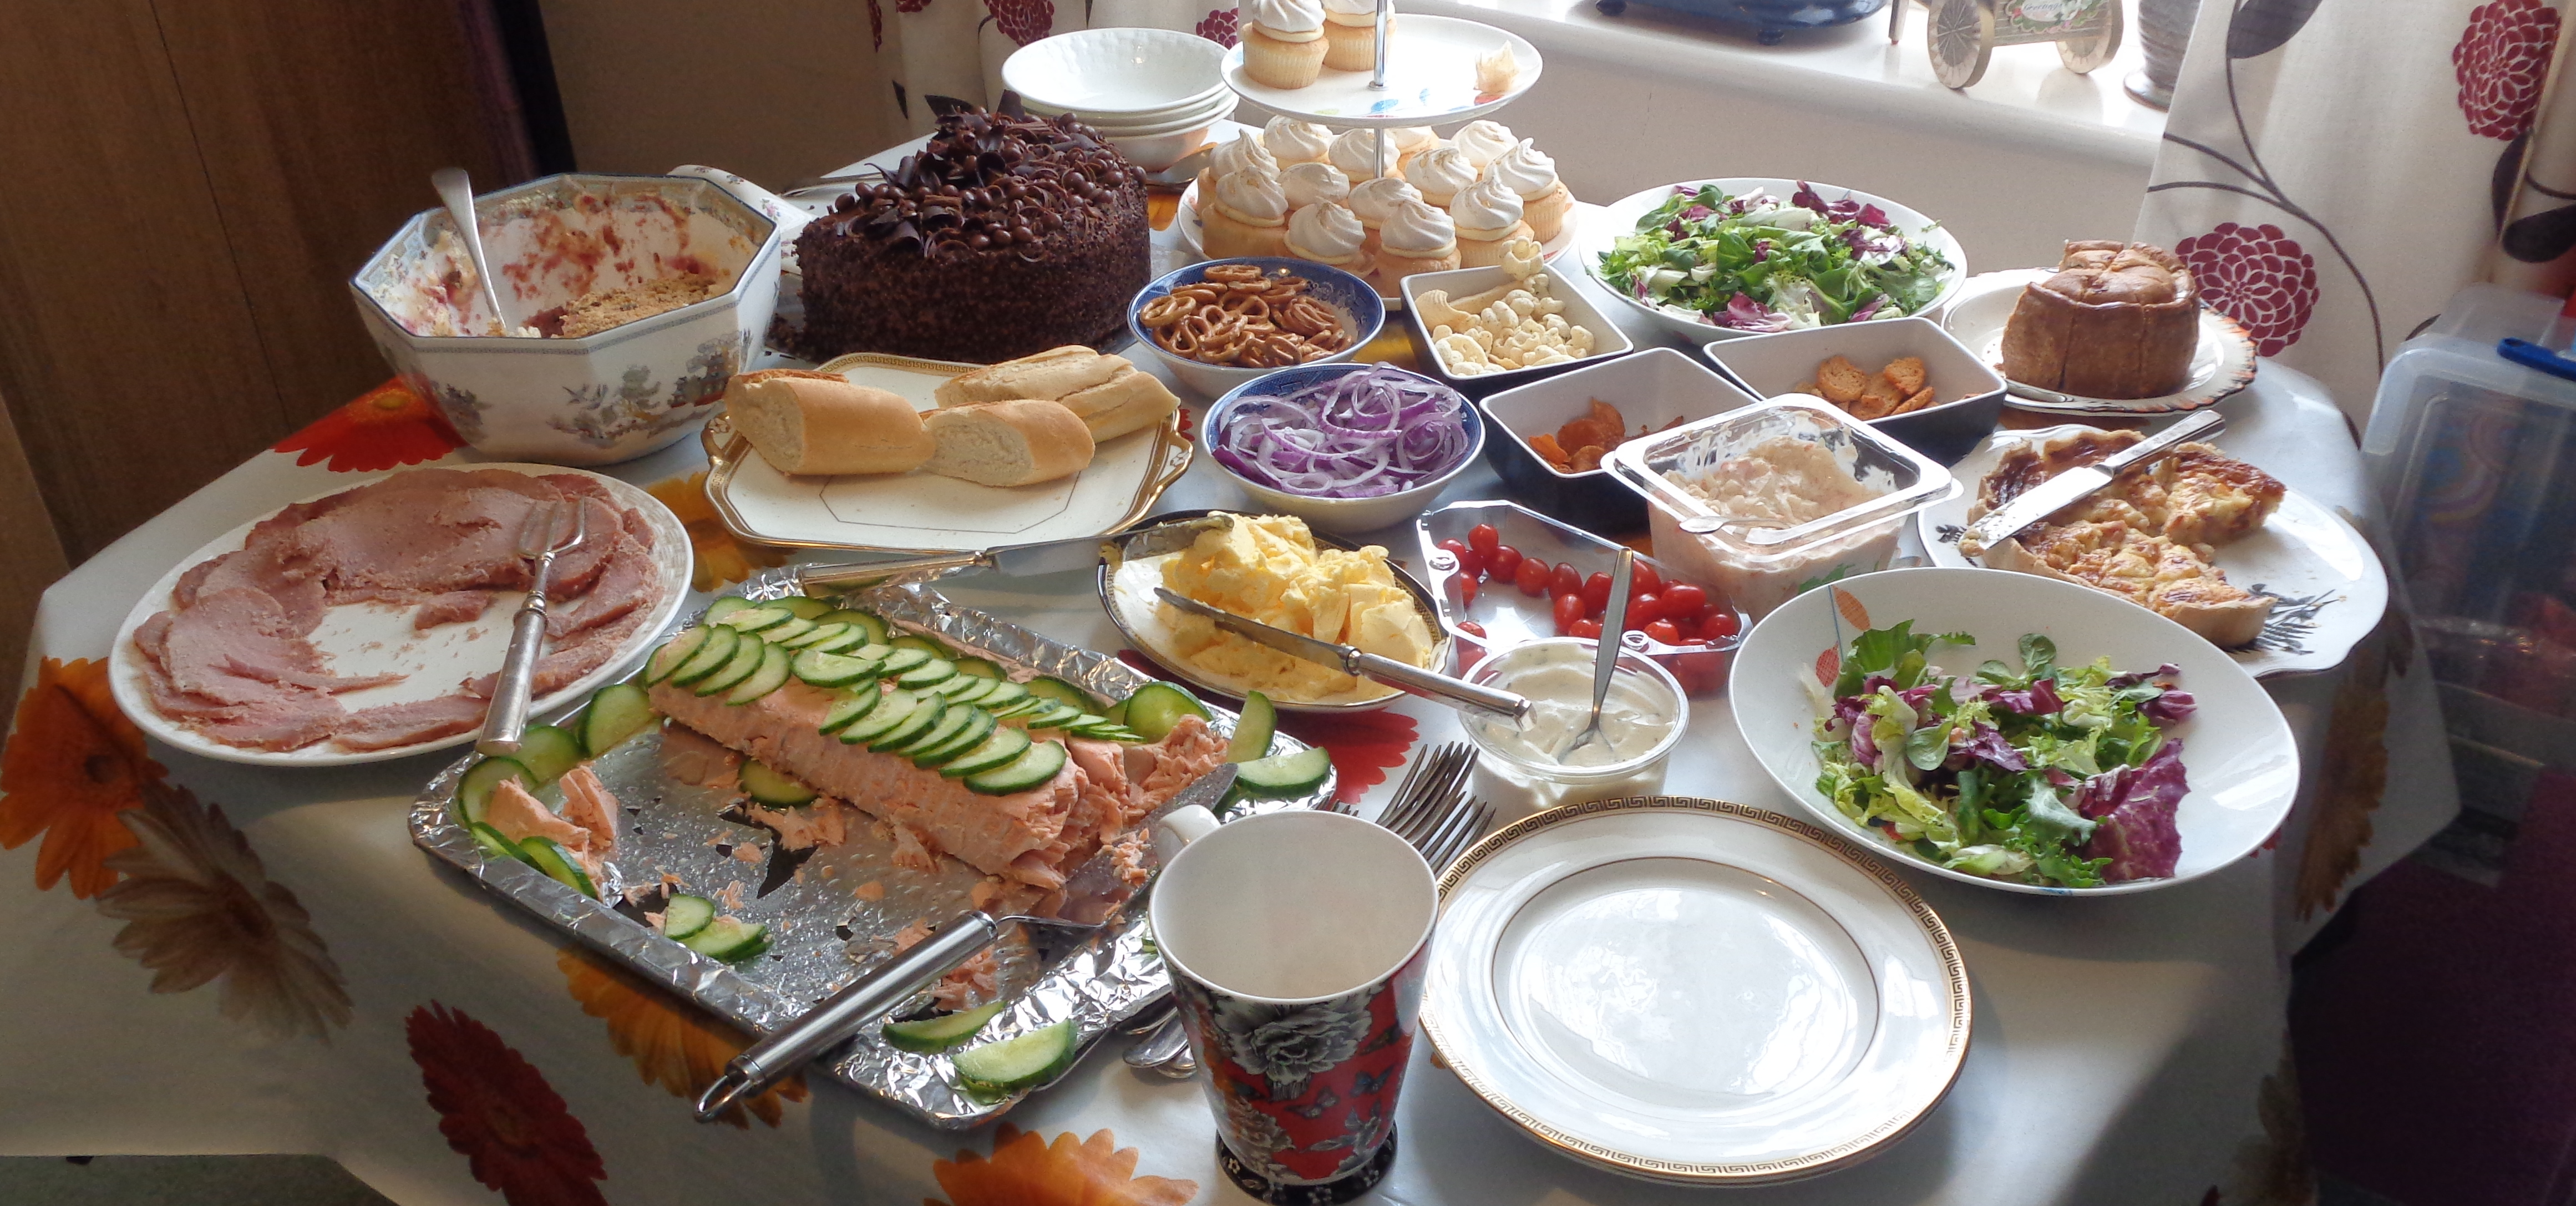 Lunch time spread